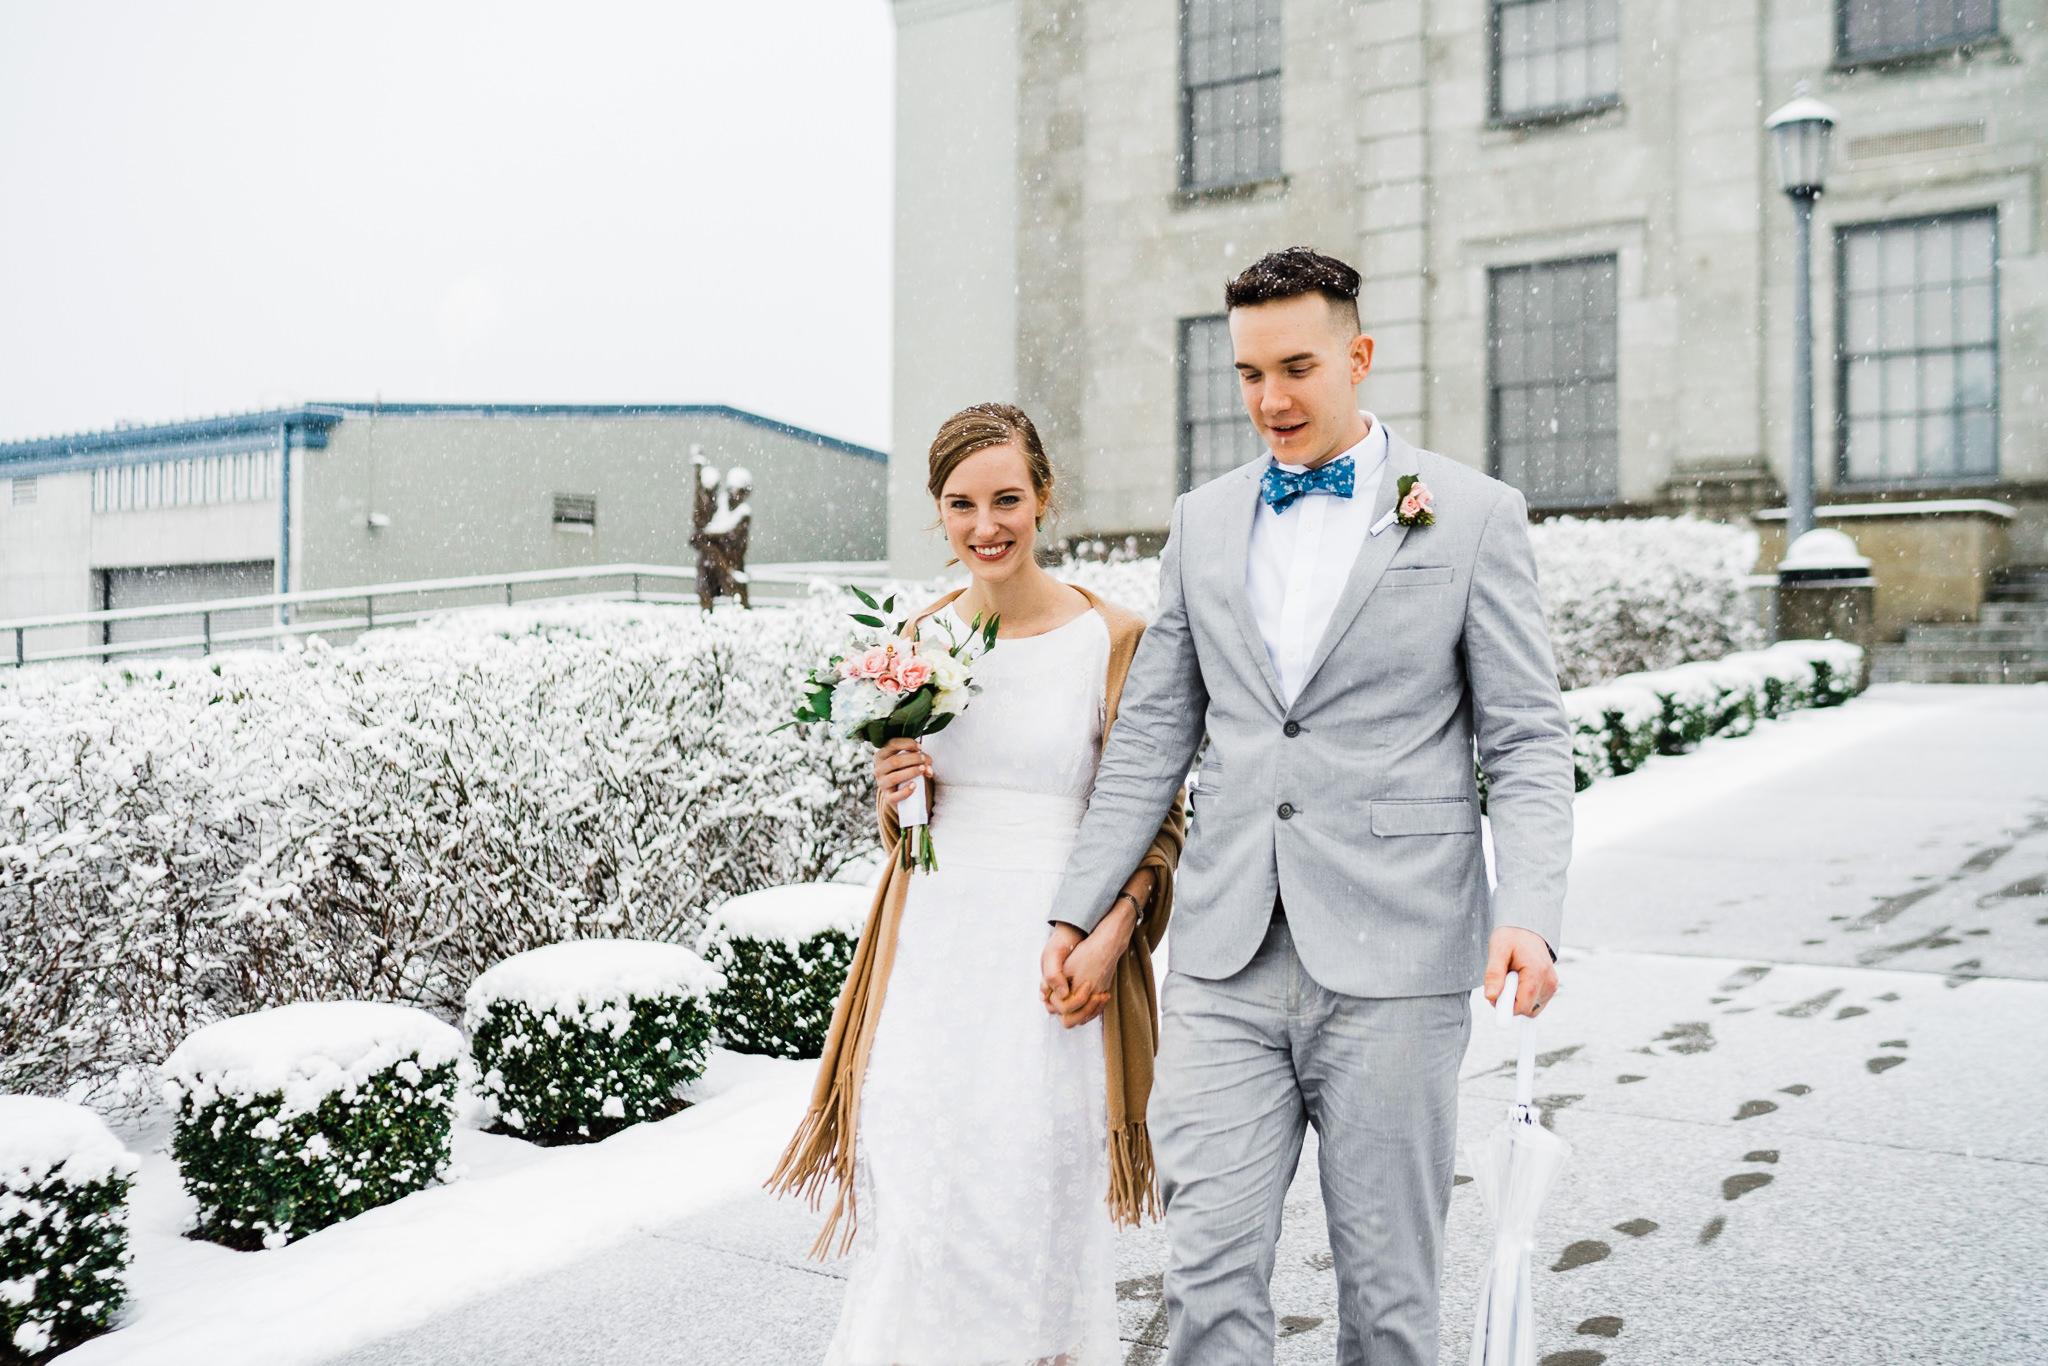 Winter Snow Wedding Portrait